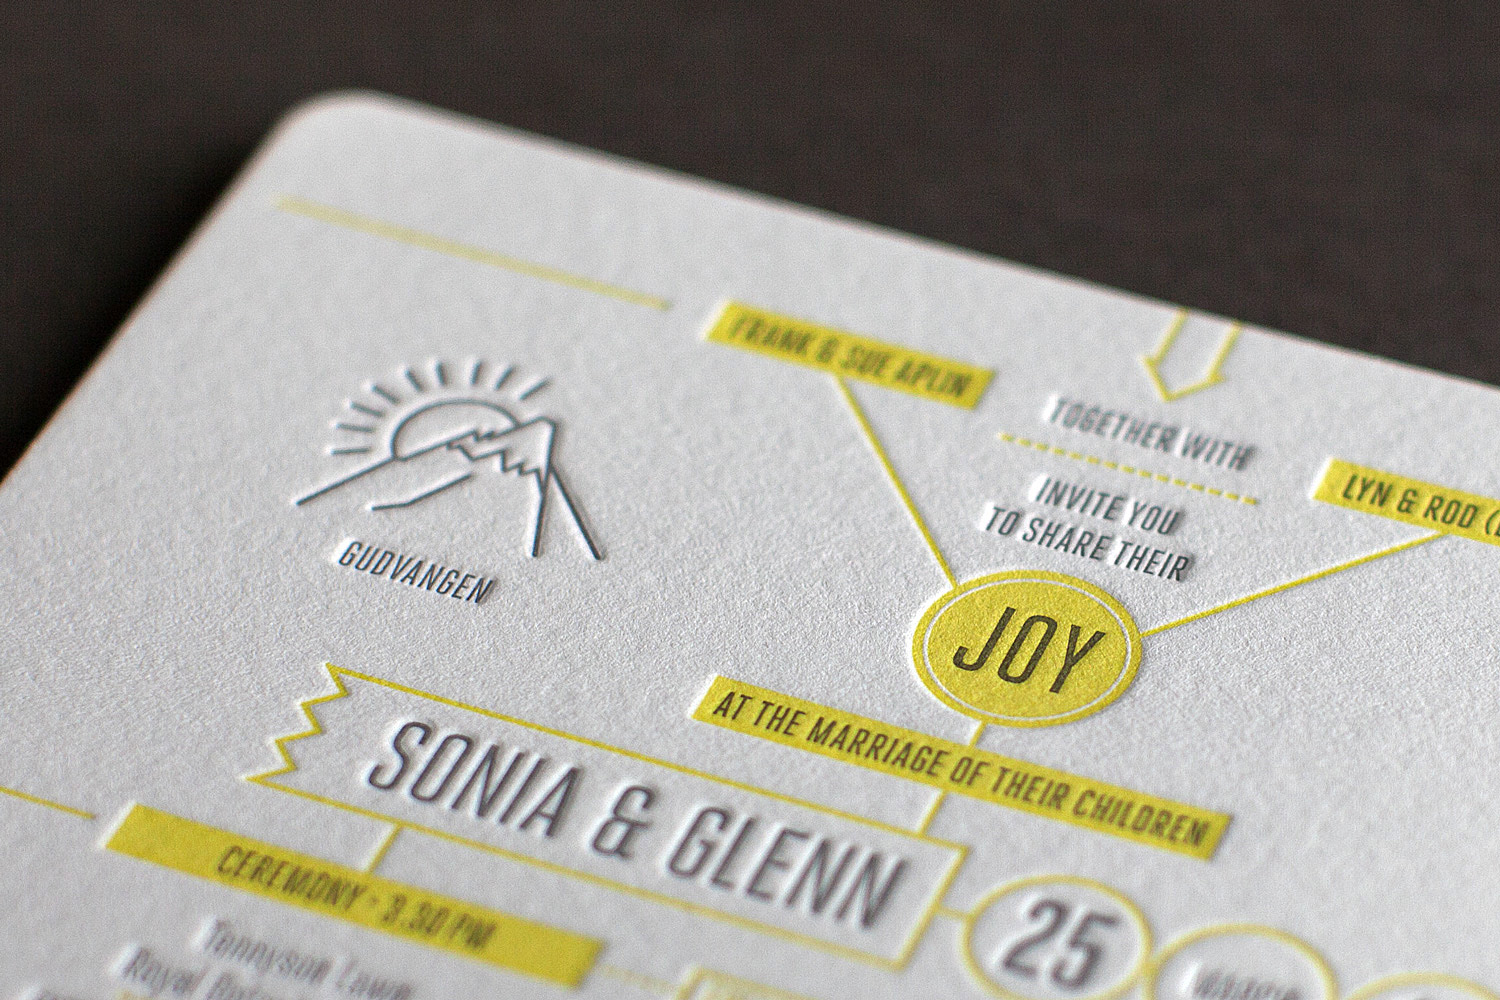 Sonia-And-Glen-Aerogram-Wedding-invitation.51